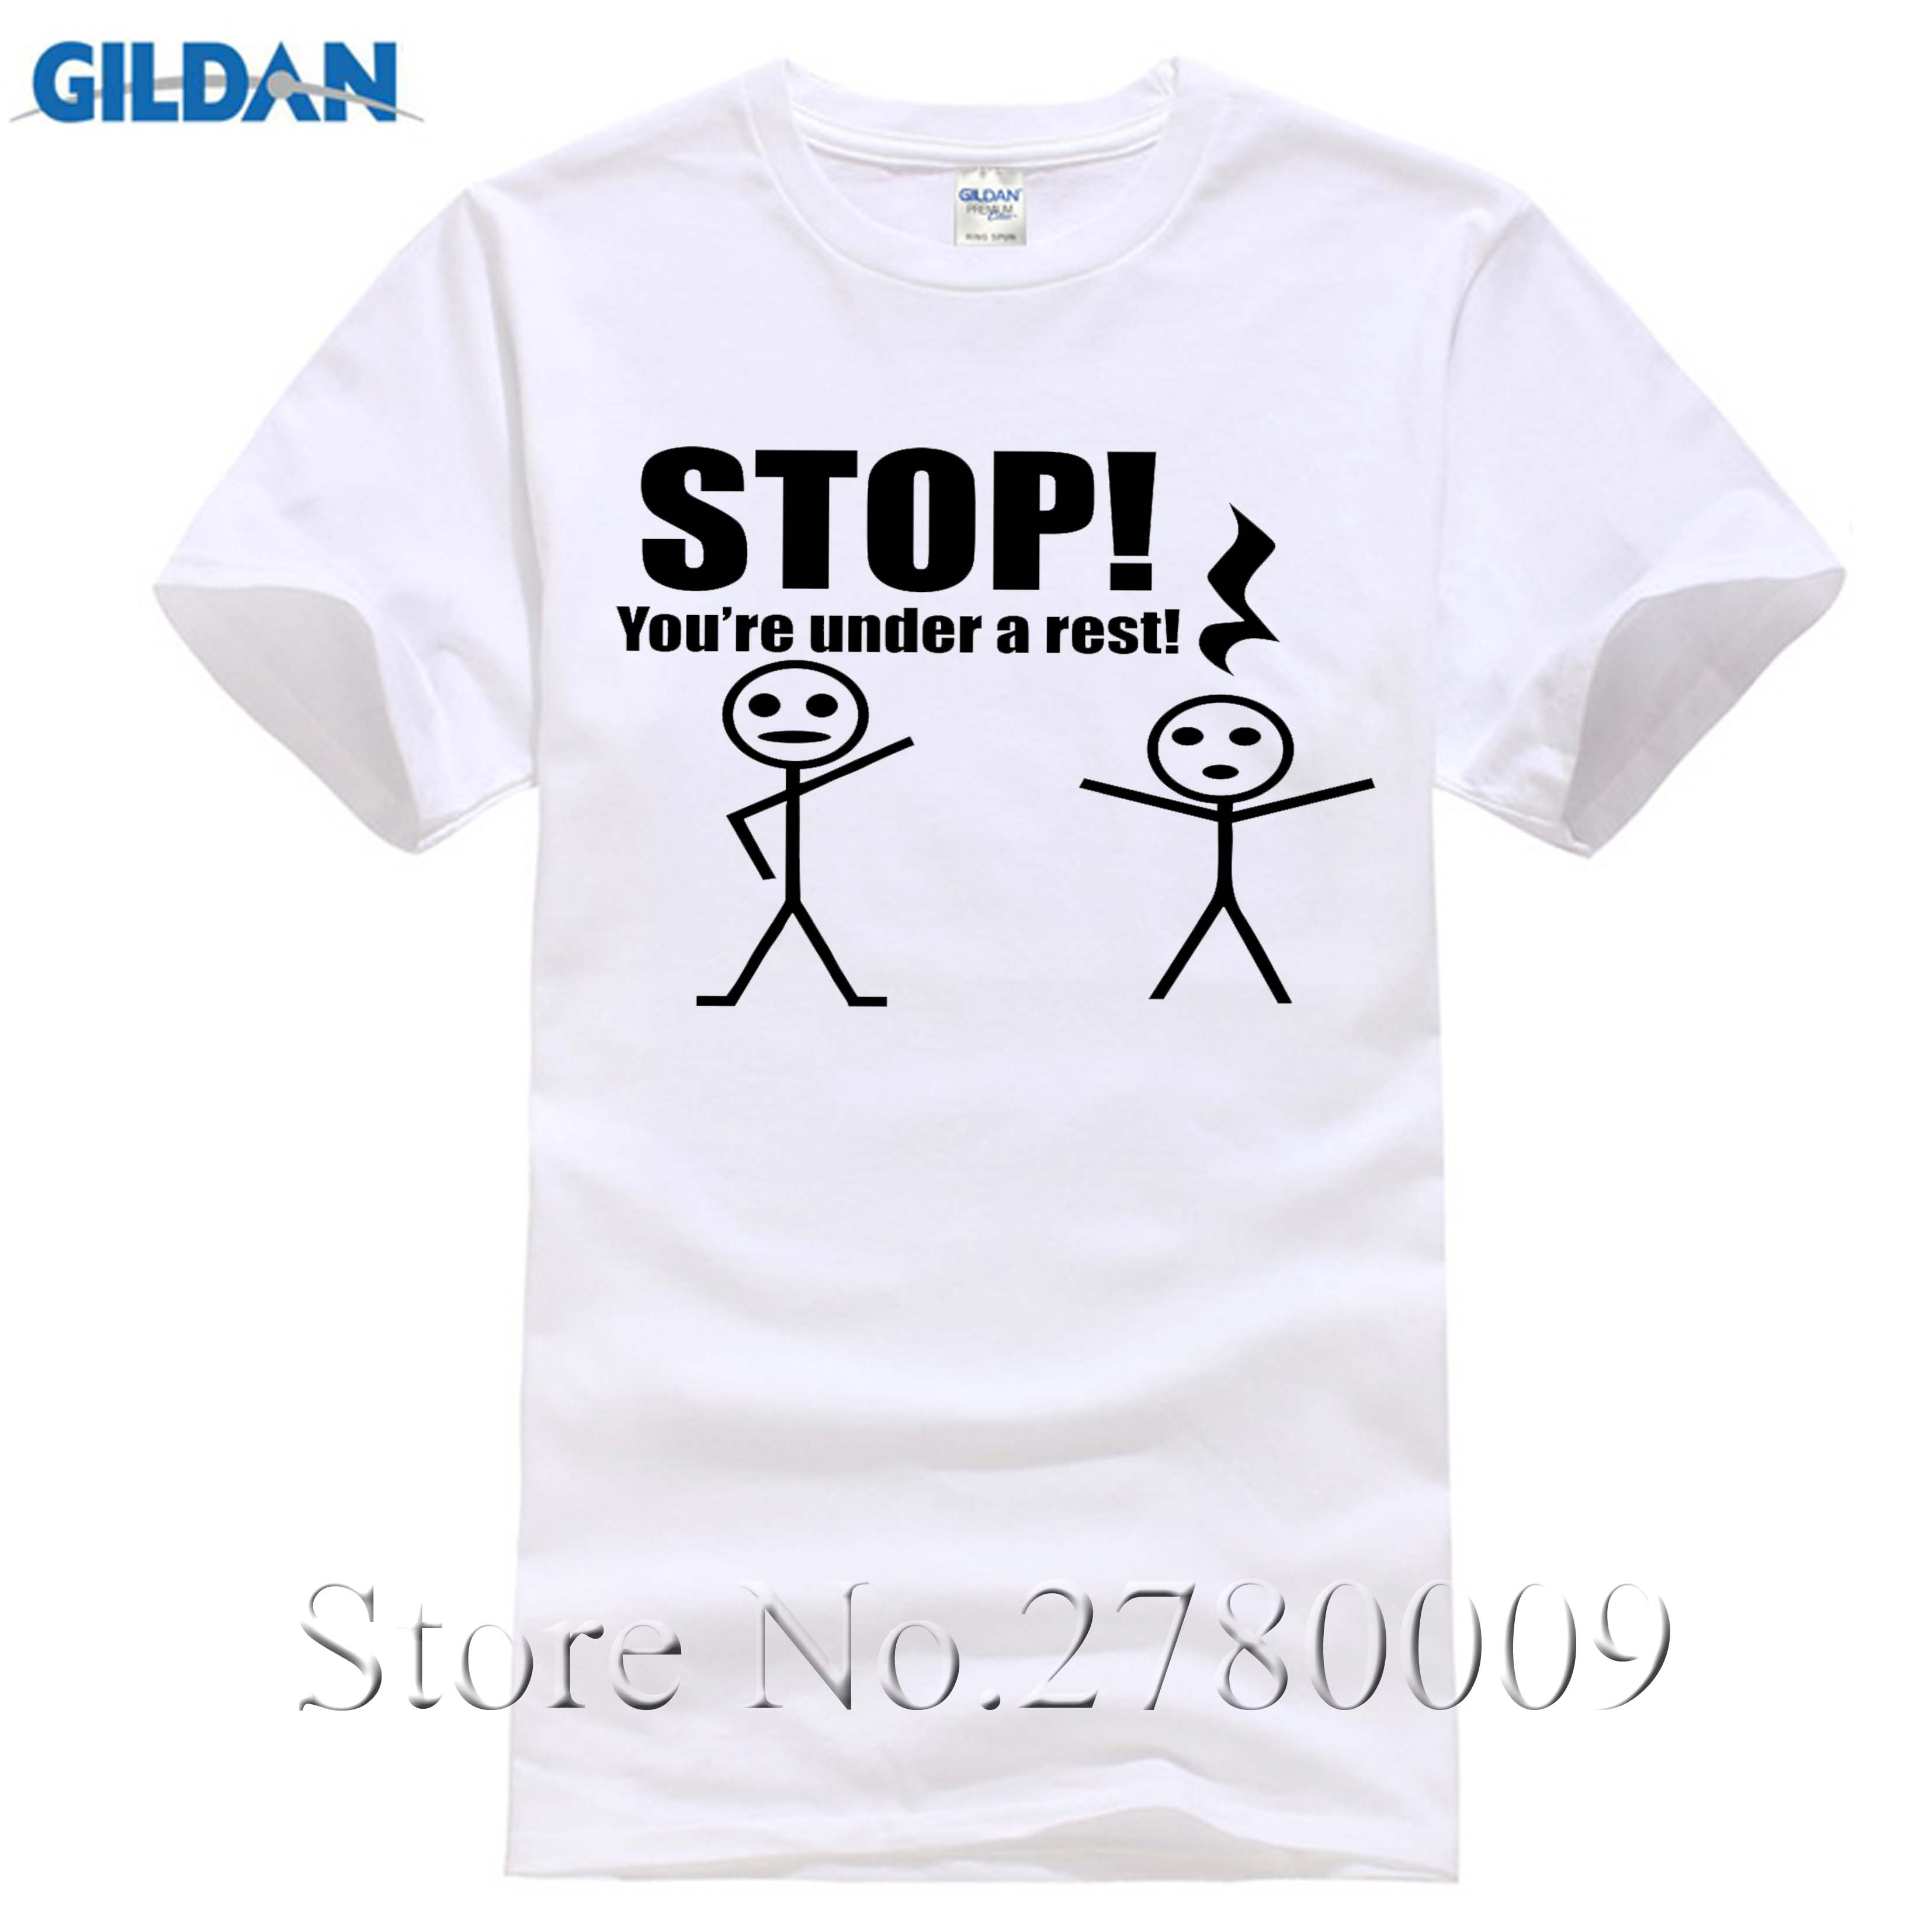 116733ecf5 Stop You're Under A Rest Funny T Shirt Cute Music Piano Teacher Gift Tee  Funny Clothing Casual Short Sleeve T shirts-in T-Shirts from Men's Clothing  on ...